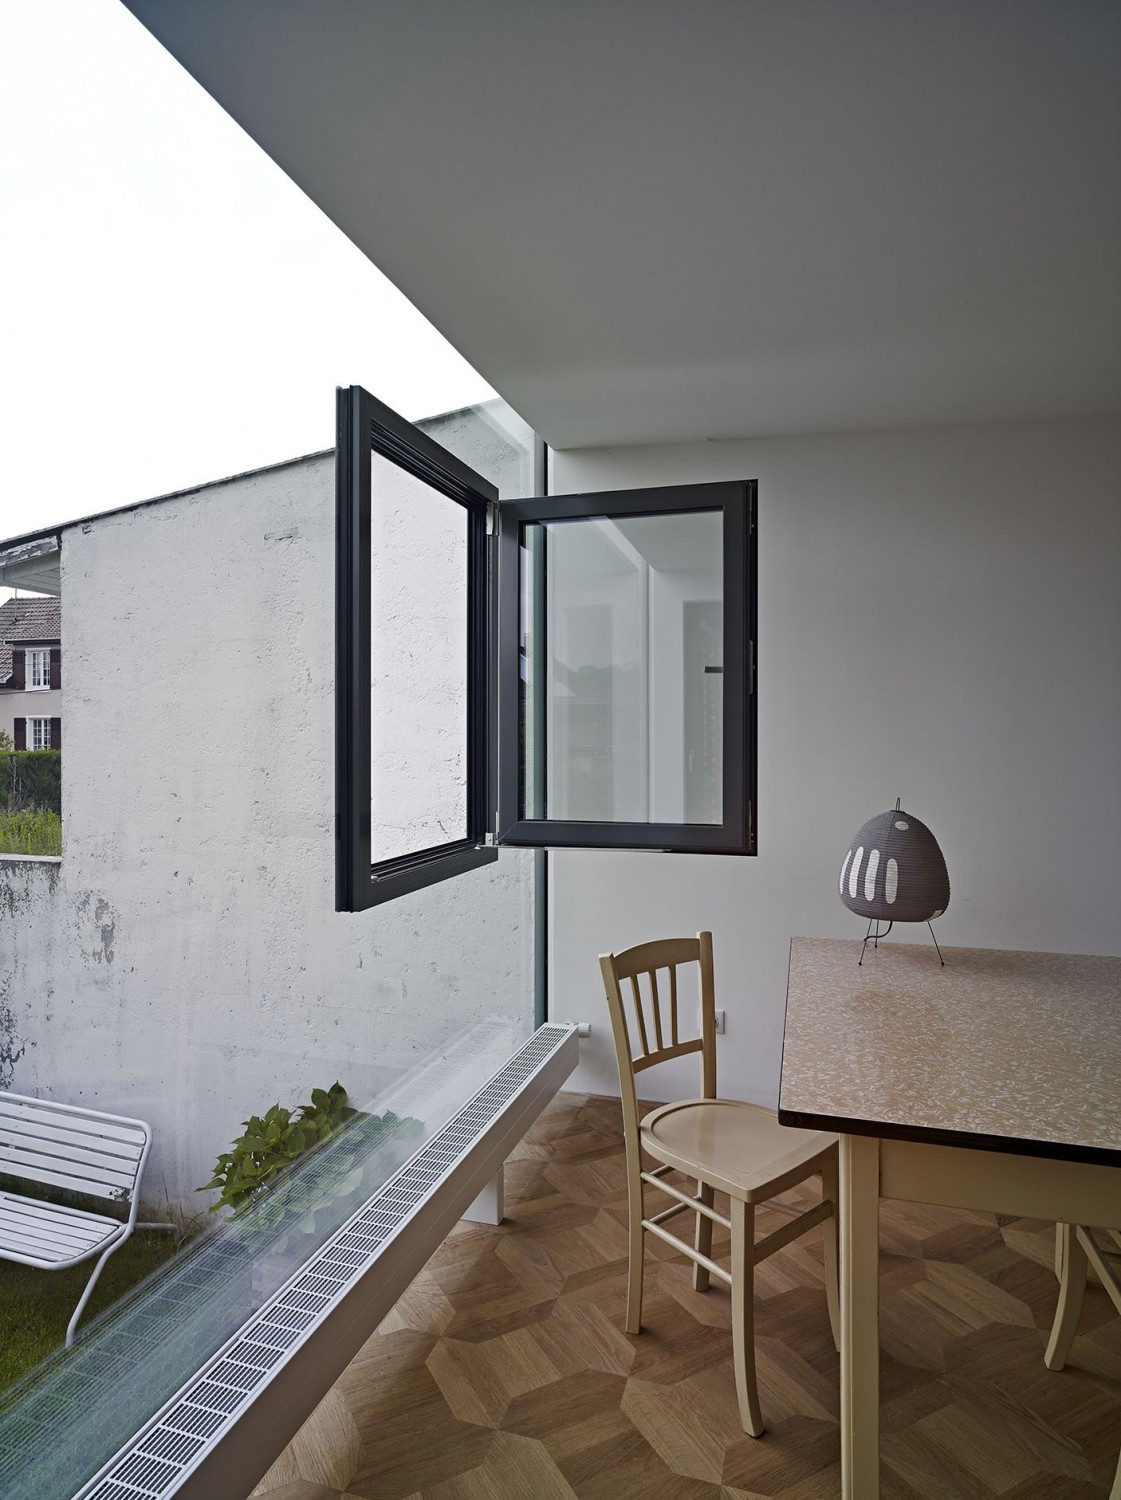 Extension C by Loic Picquet Architecte - on flodeau.com 09